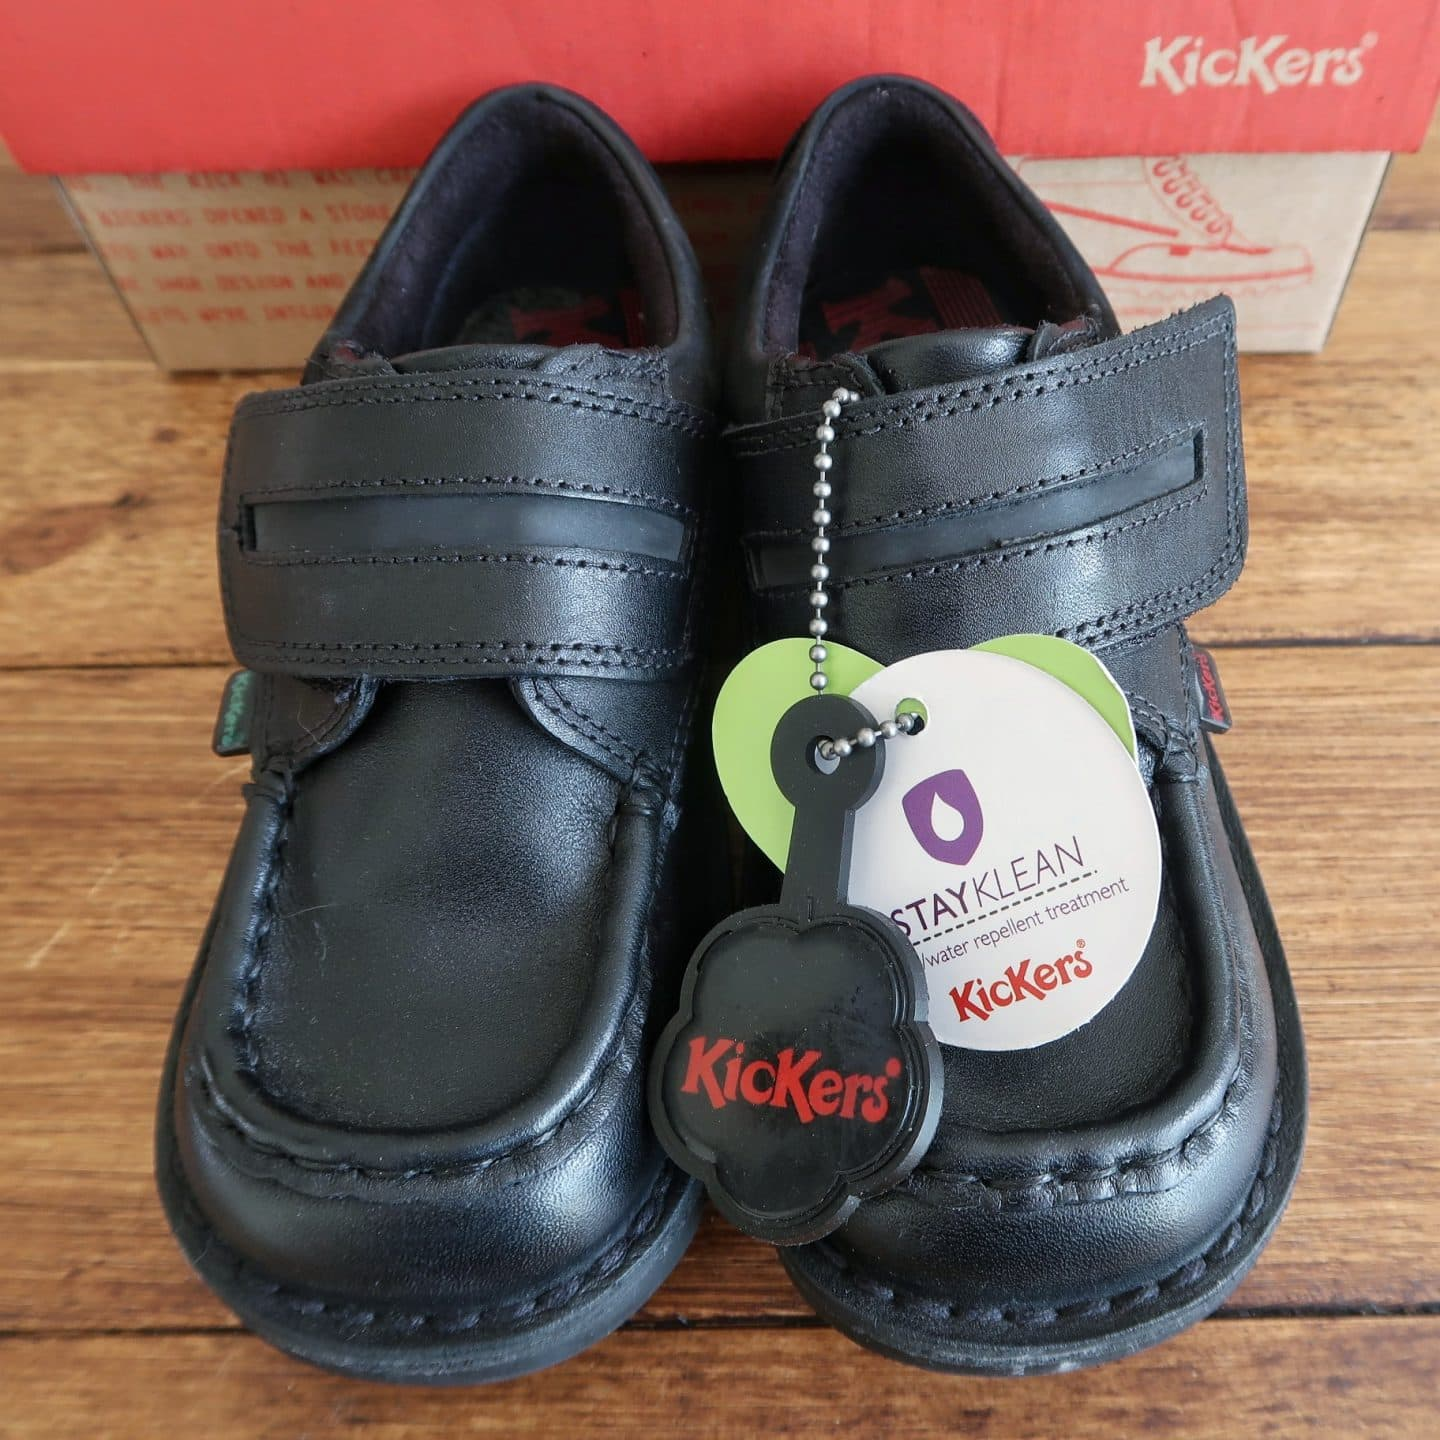 Kickers Kick Cyba Back to School shoes